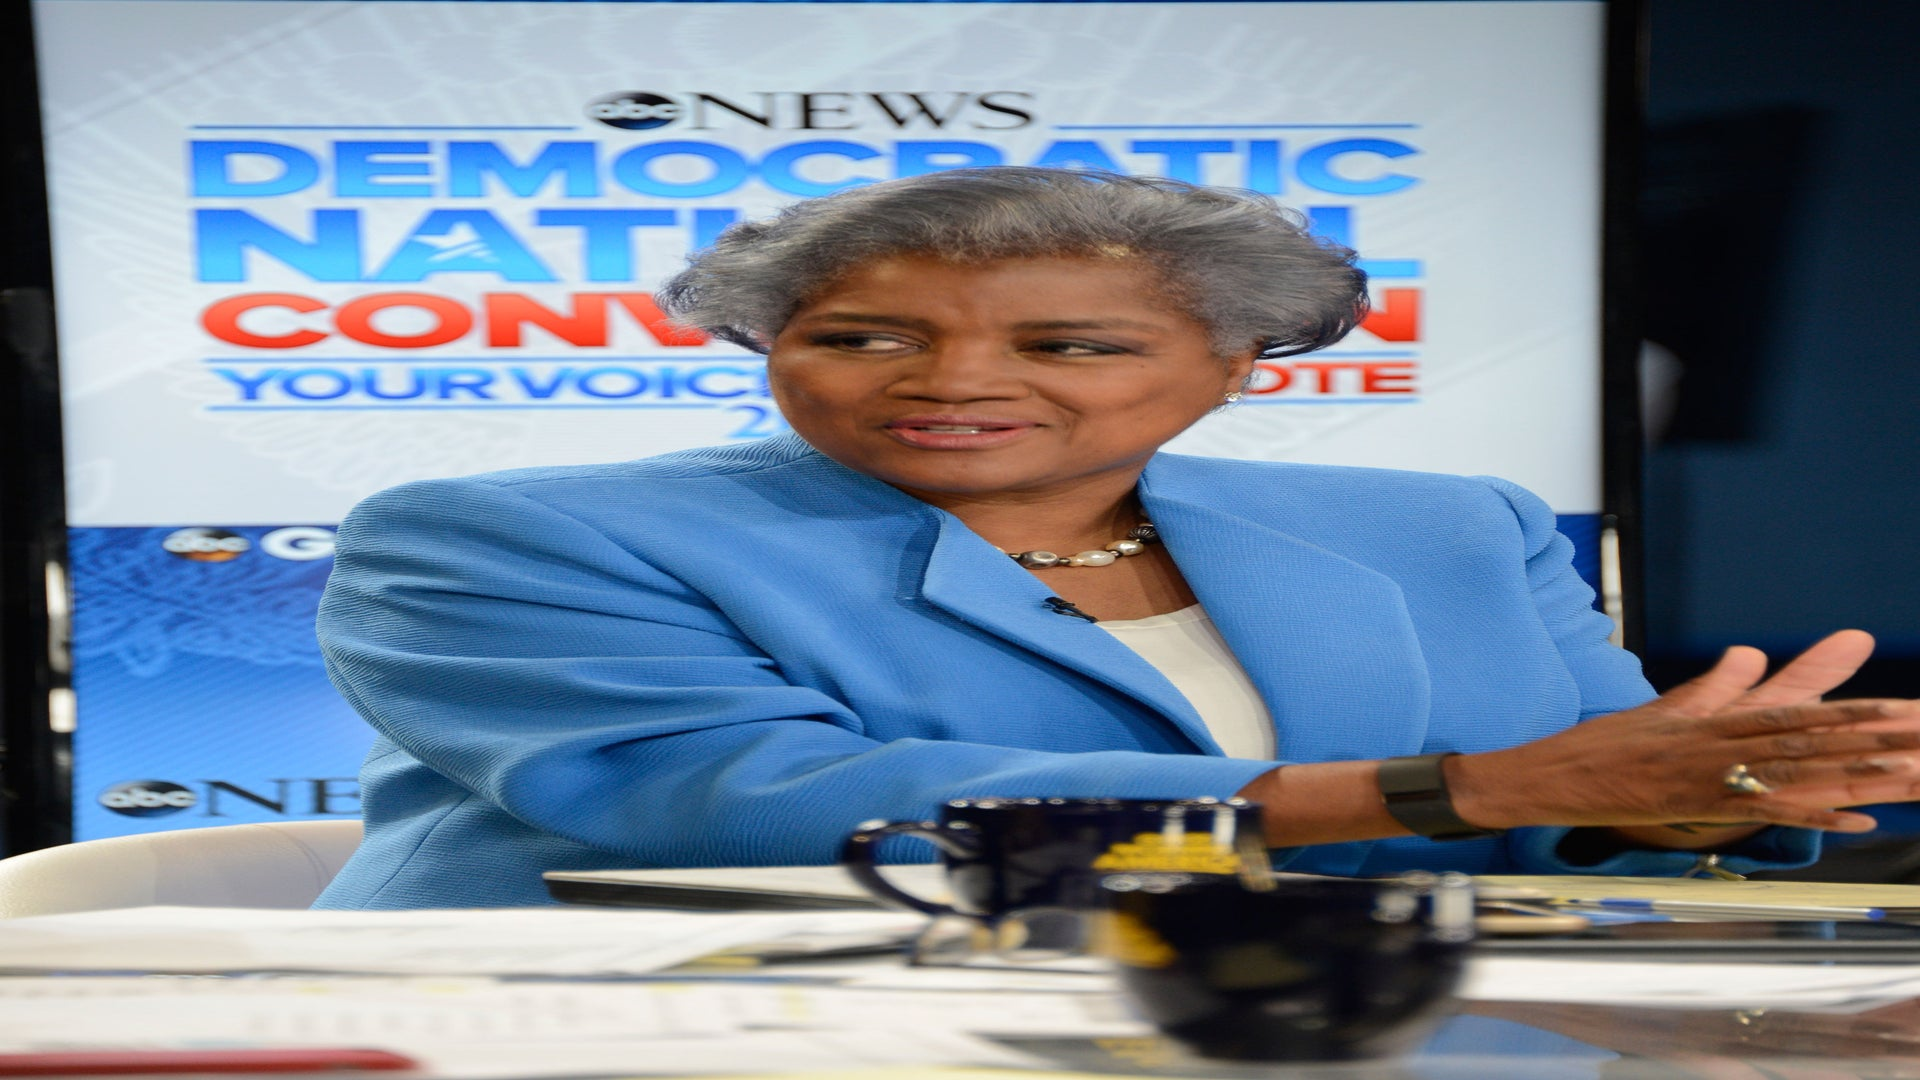 Donna Brazile Resigns As CNN Contributor In Light Of Recent Email Leaks